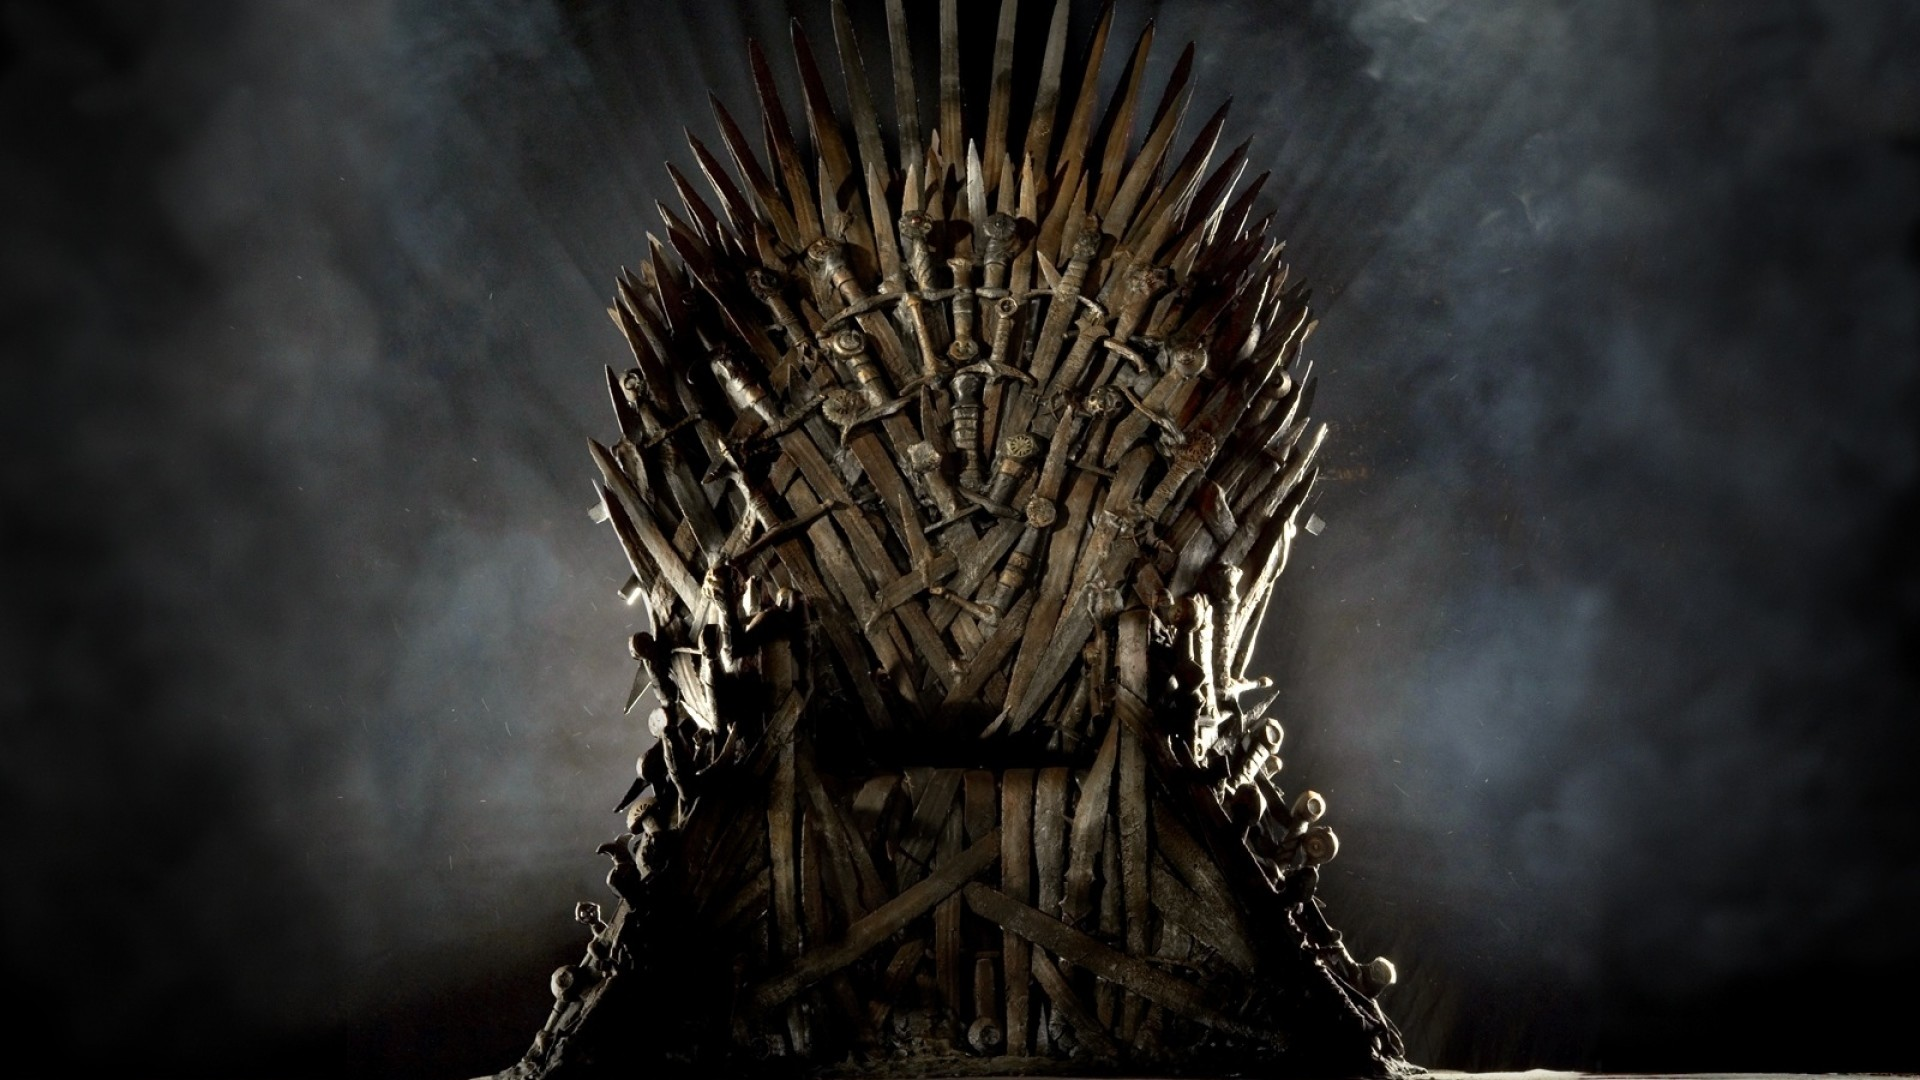 1920x1080  Wallpaper game of thrones, series, throne, power, sword